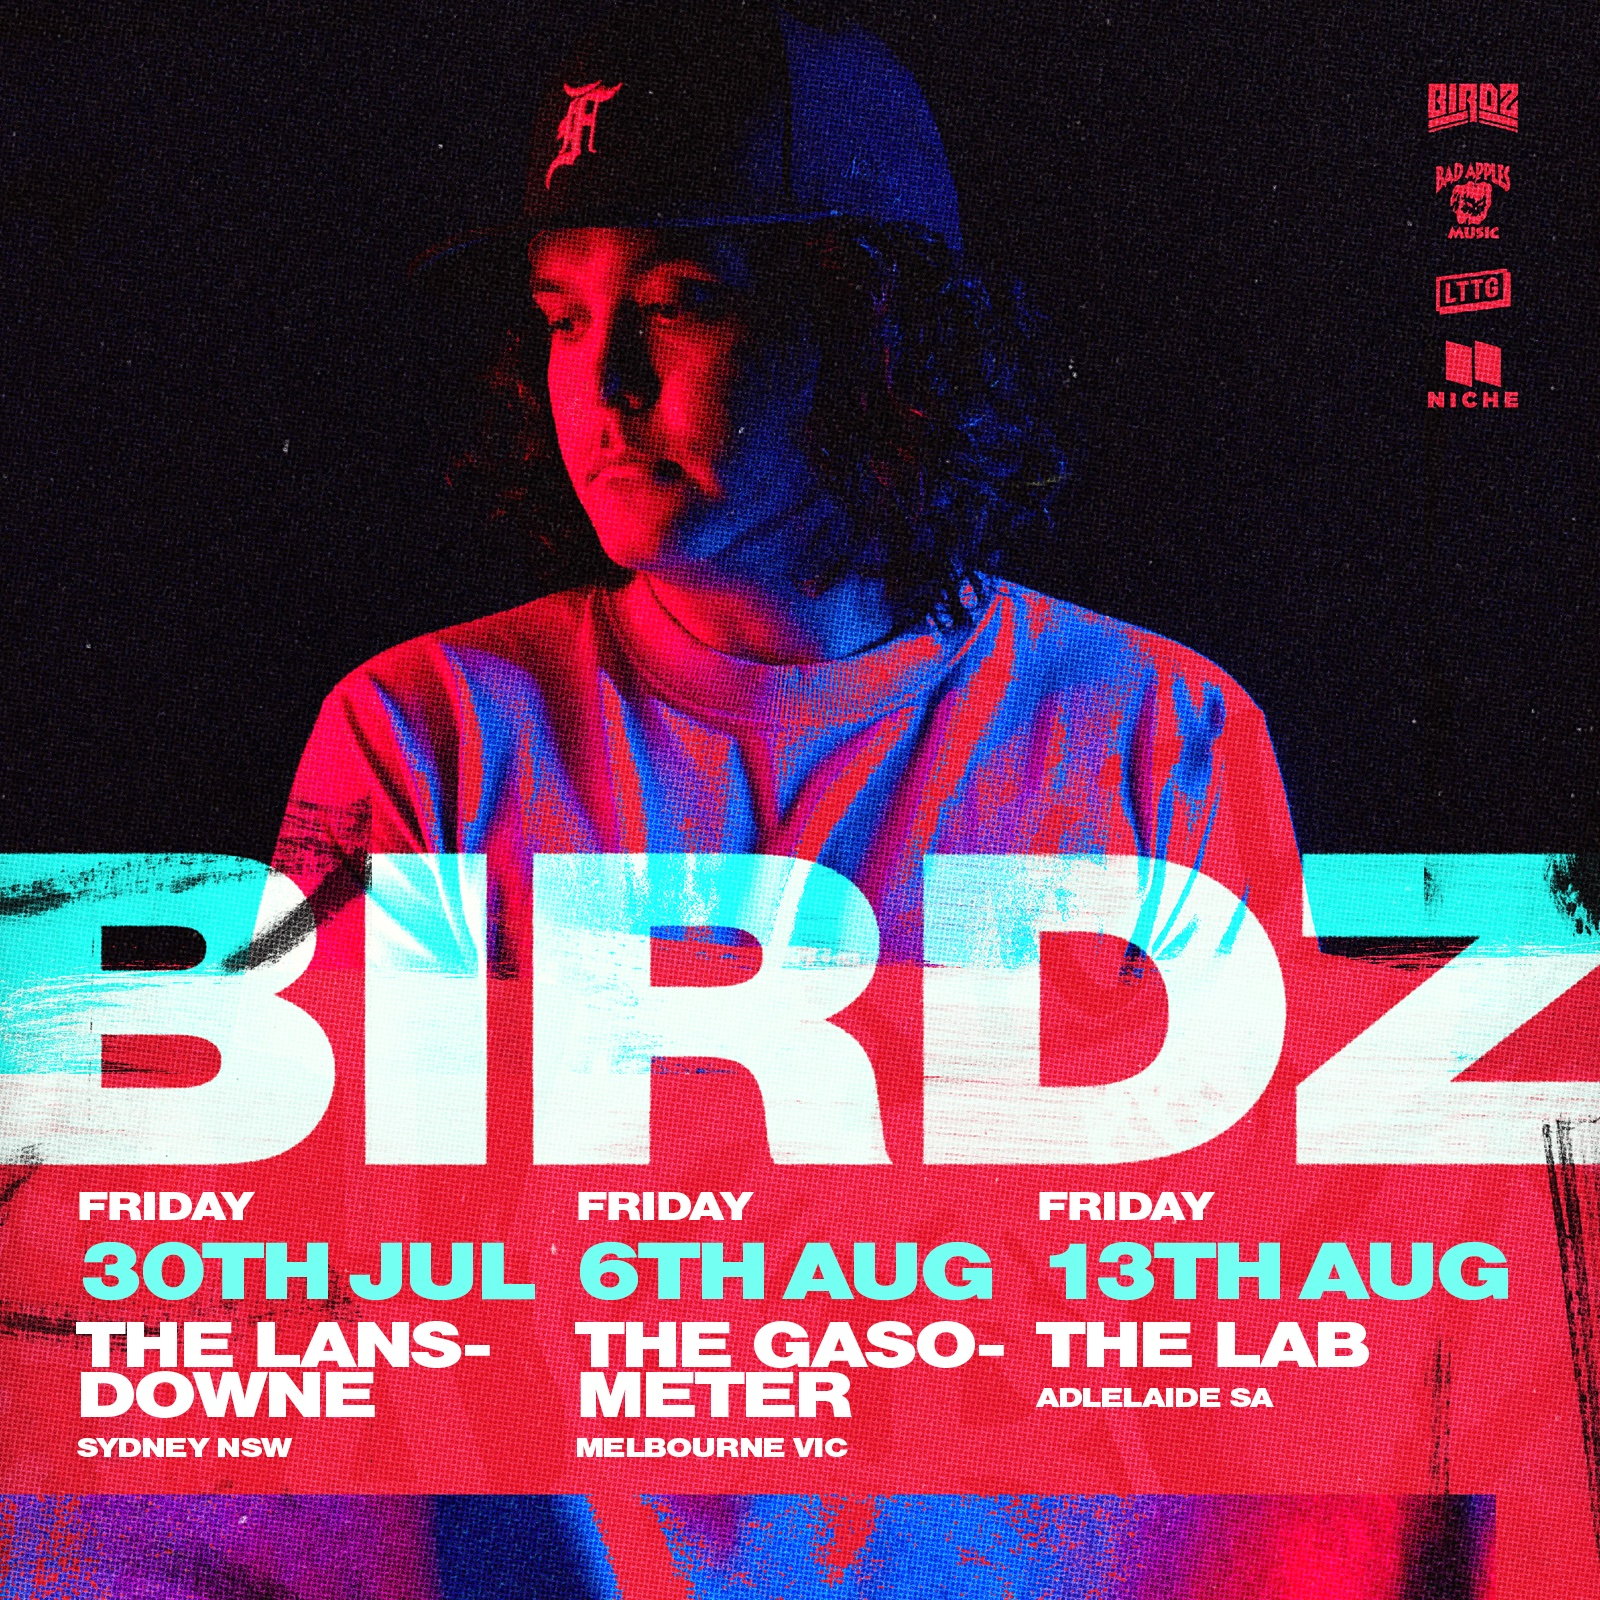 Raised in Katherine N.T. and based in Melbourne, as a proud Butchulla man, Birdz is renowned for his unique brand of hard-hitting hip-hop embodying strong messages of hope and self-determination.